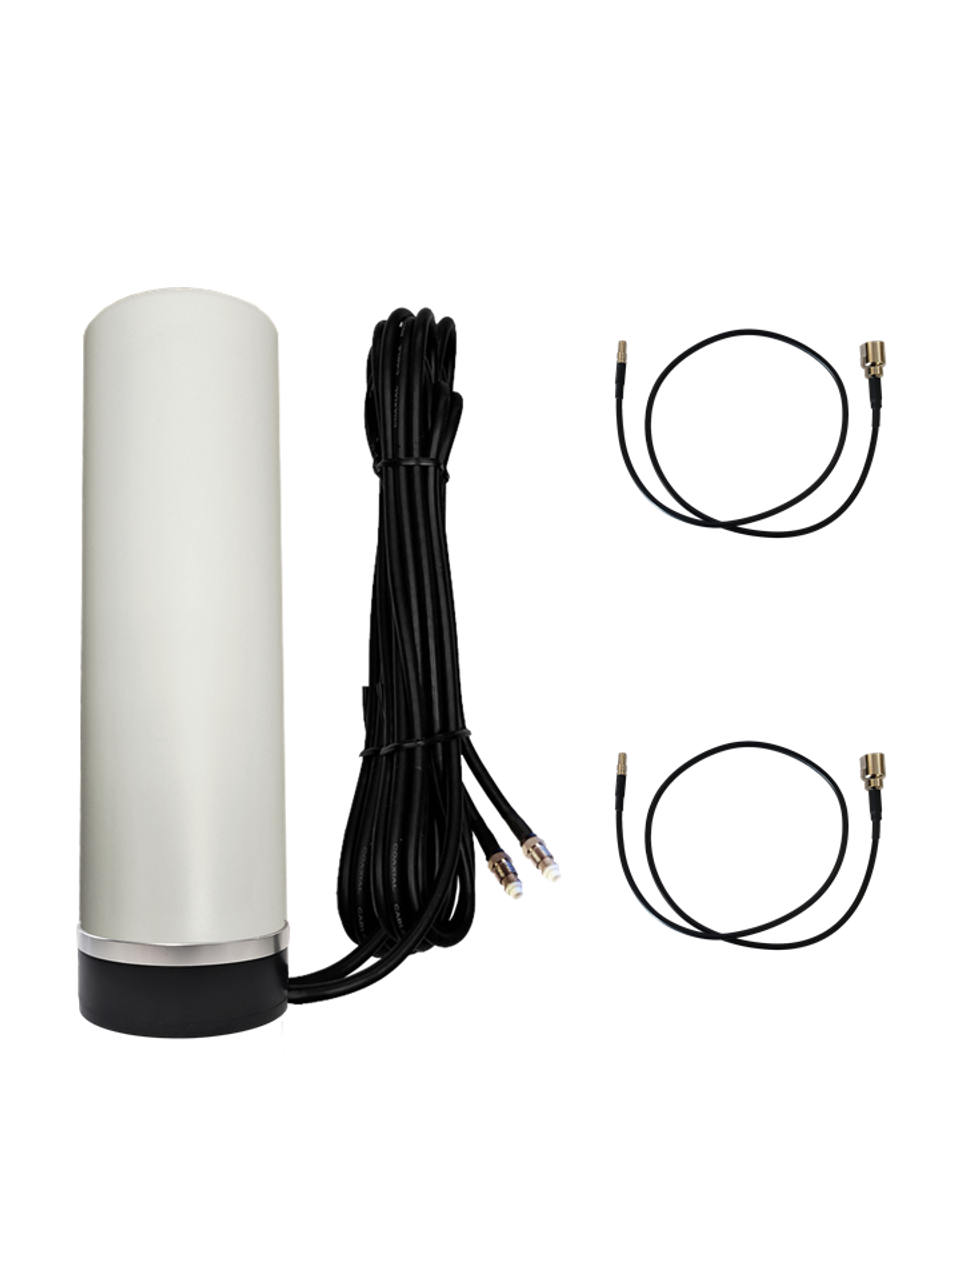 M19M Omni Directional MIMO 2 x Cellular 4G LTE GPRS 5G NR IoT M2M Magnetic Mount Antenna w/2 x 16ft Coax Cables for Verizon Novatel Jetpack MiFi 7730L